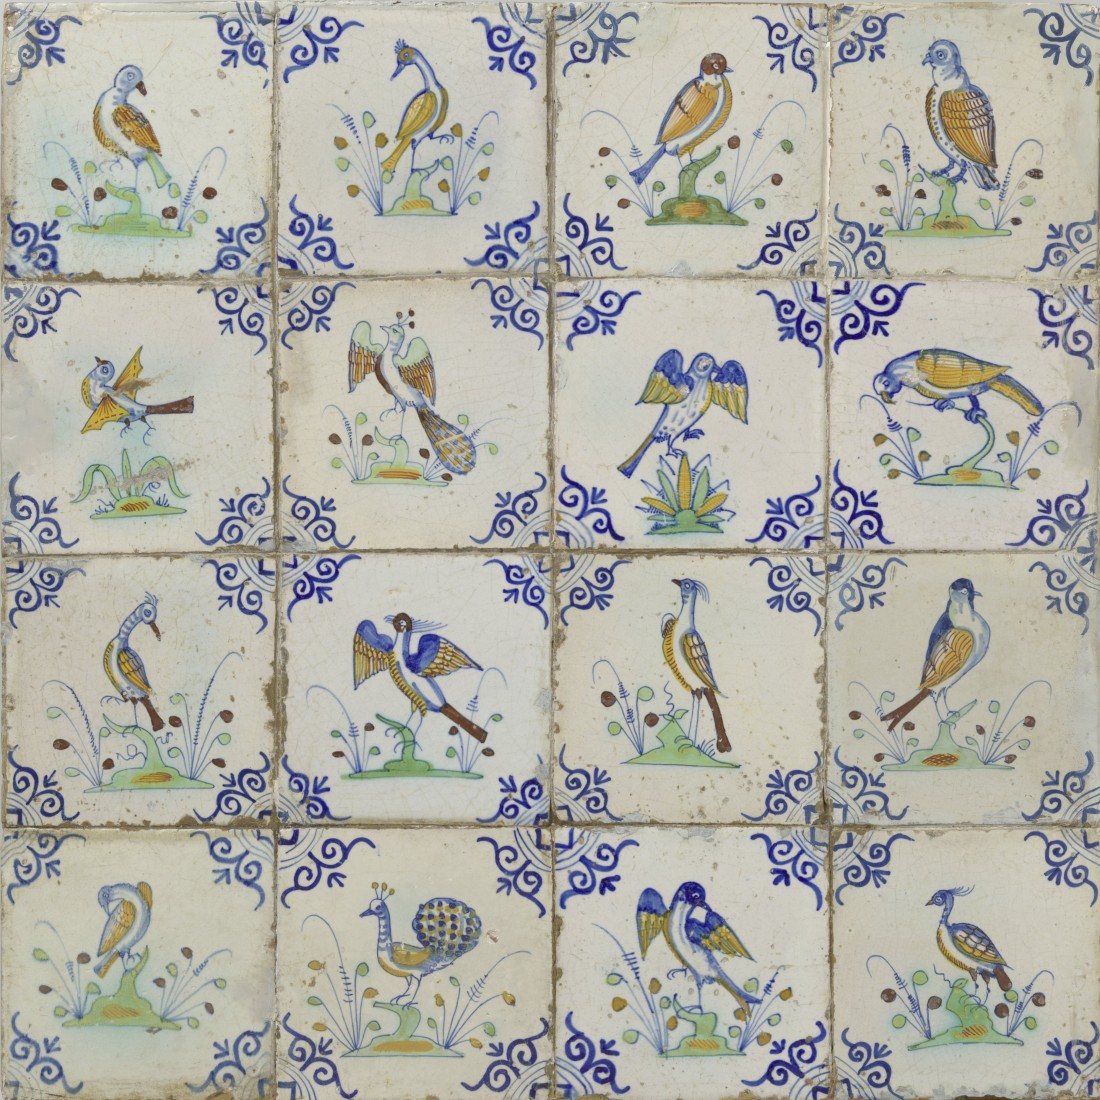 Field of sixteen tiles each with a multicolored bird on a ground with berries with an oxhead design in each corner. ca. 1640-1660.